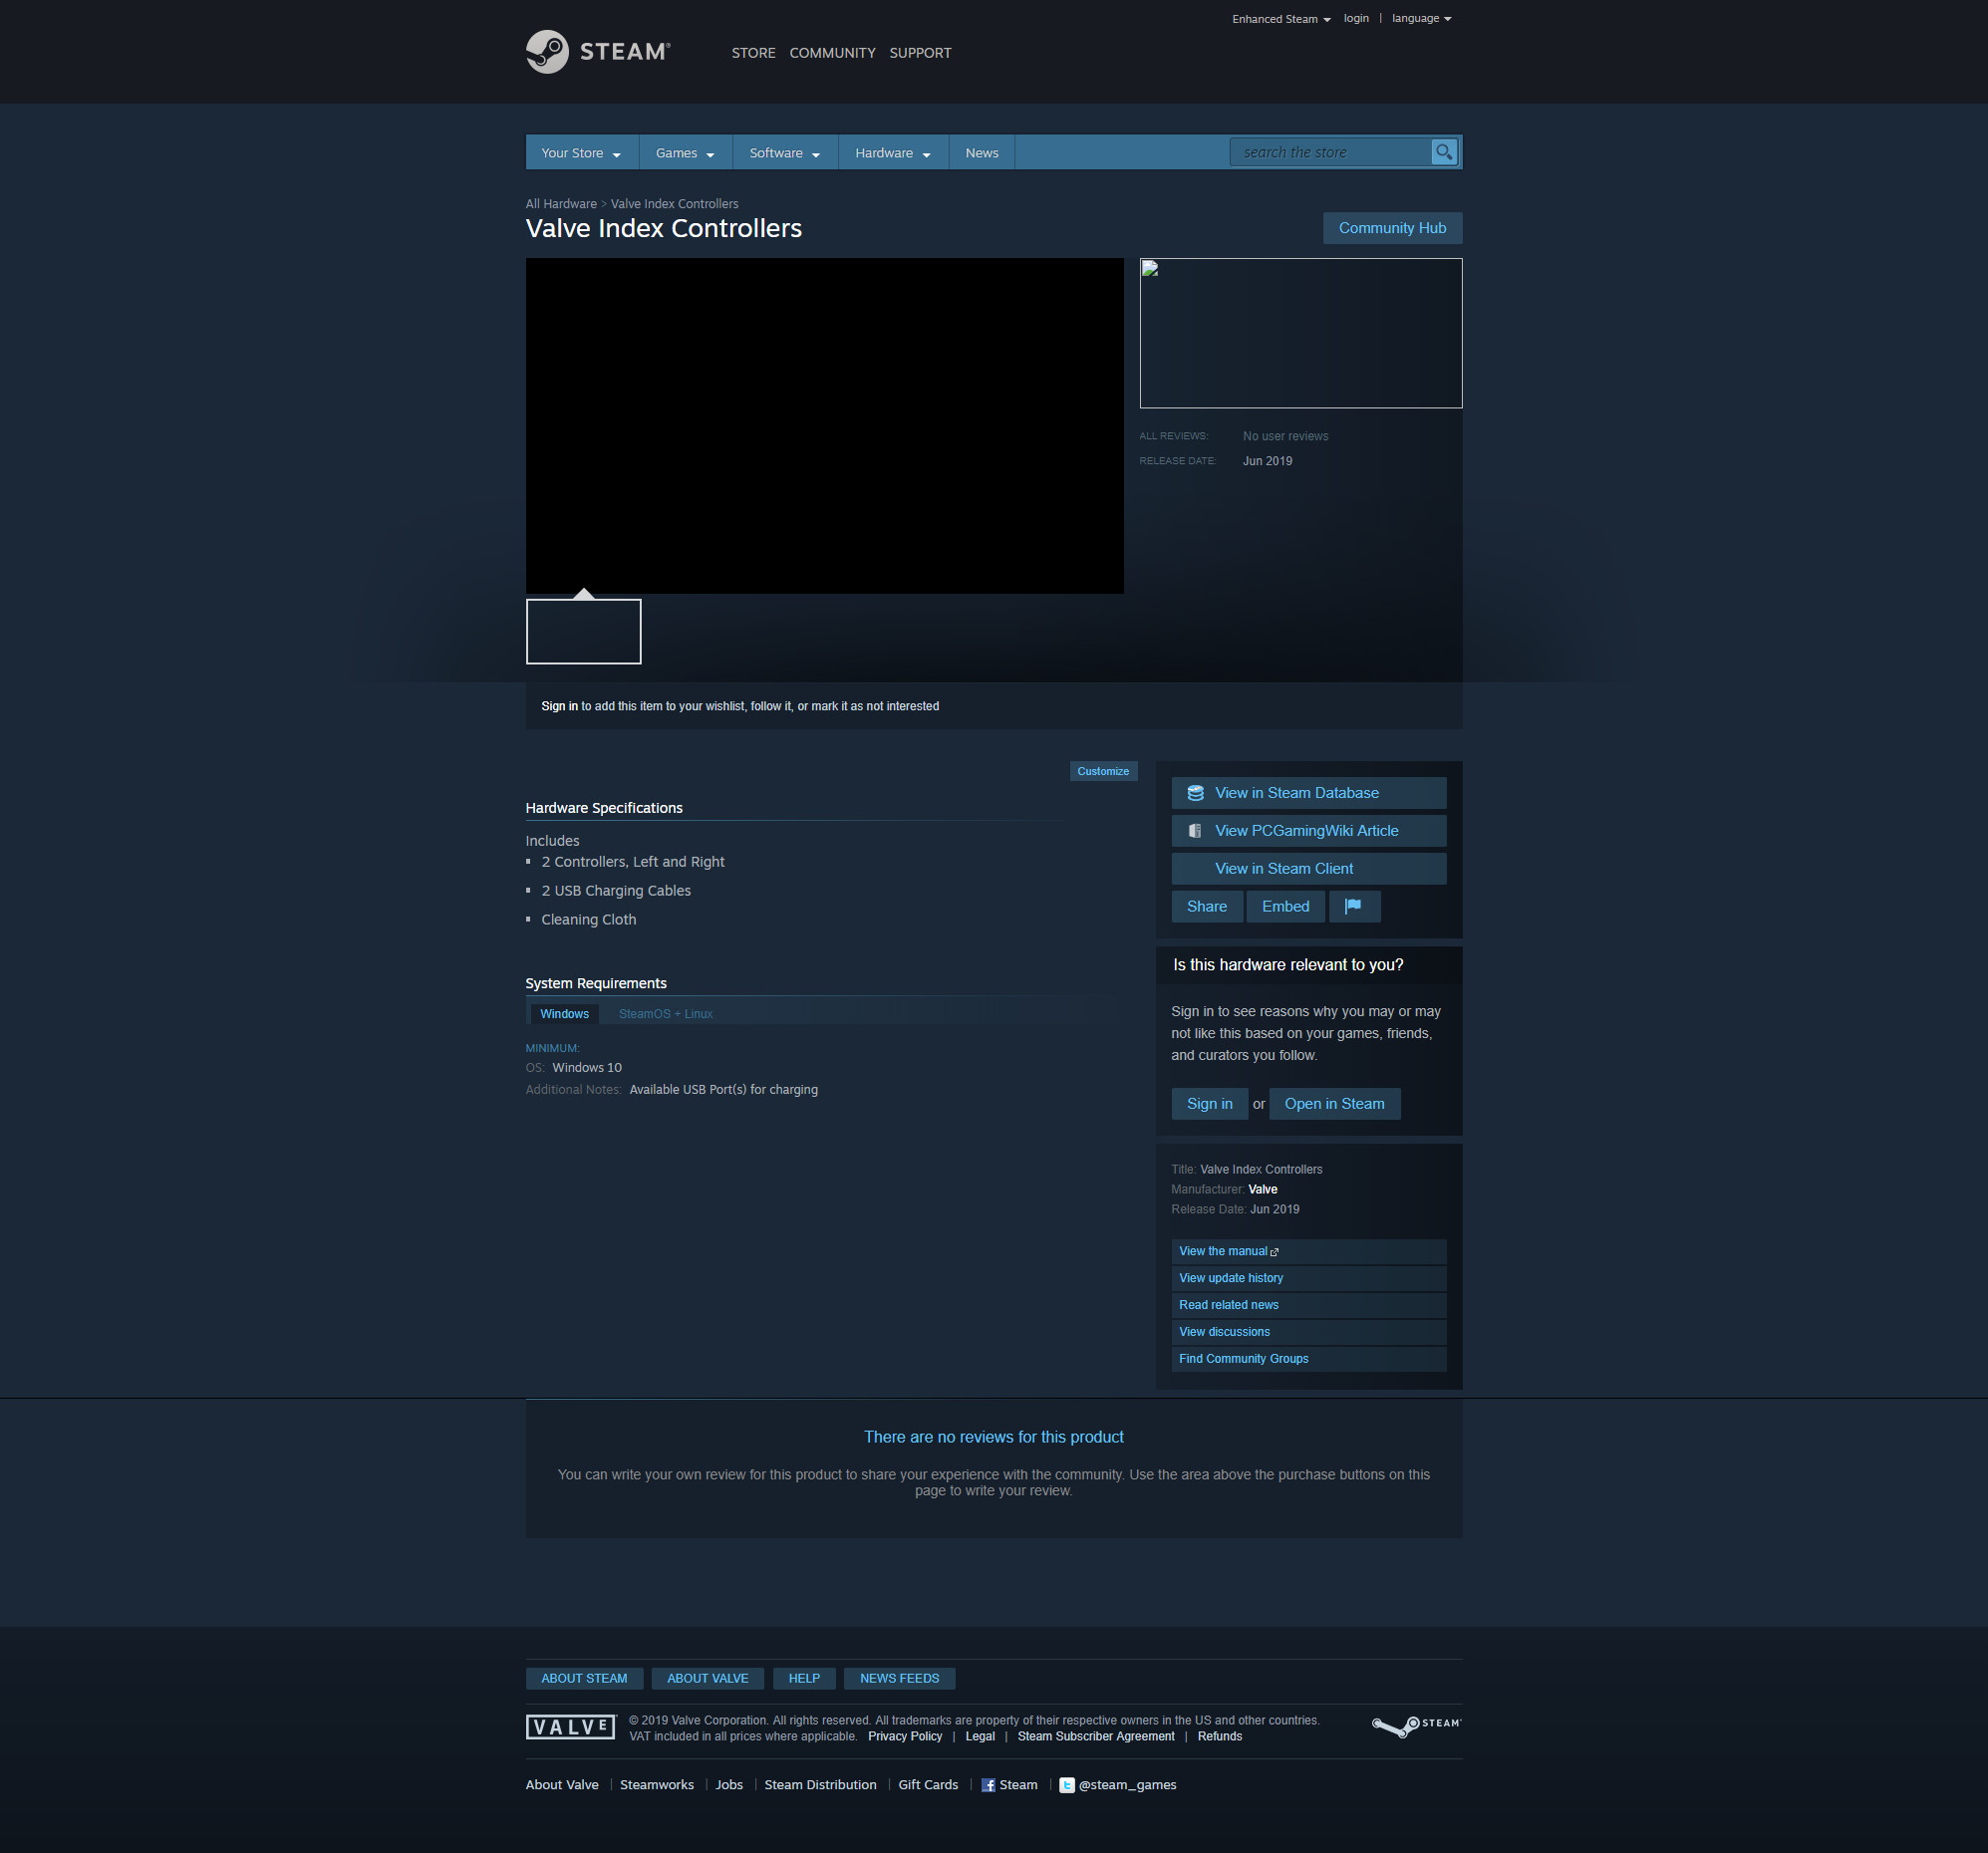 Valve Index will launch on June 15 with preorders opening in